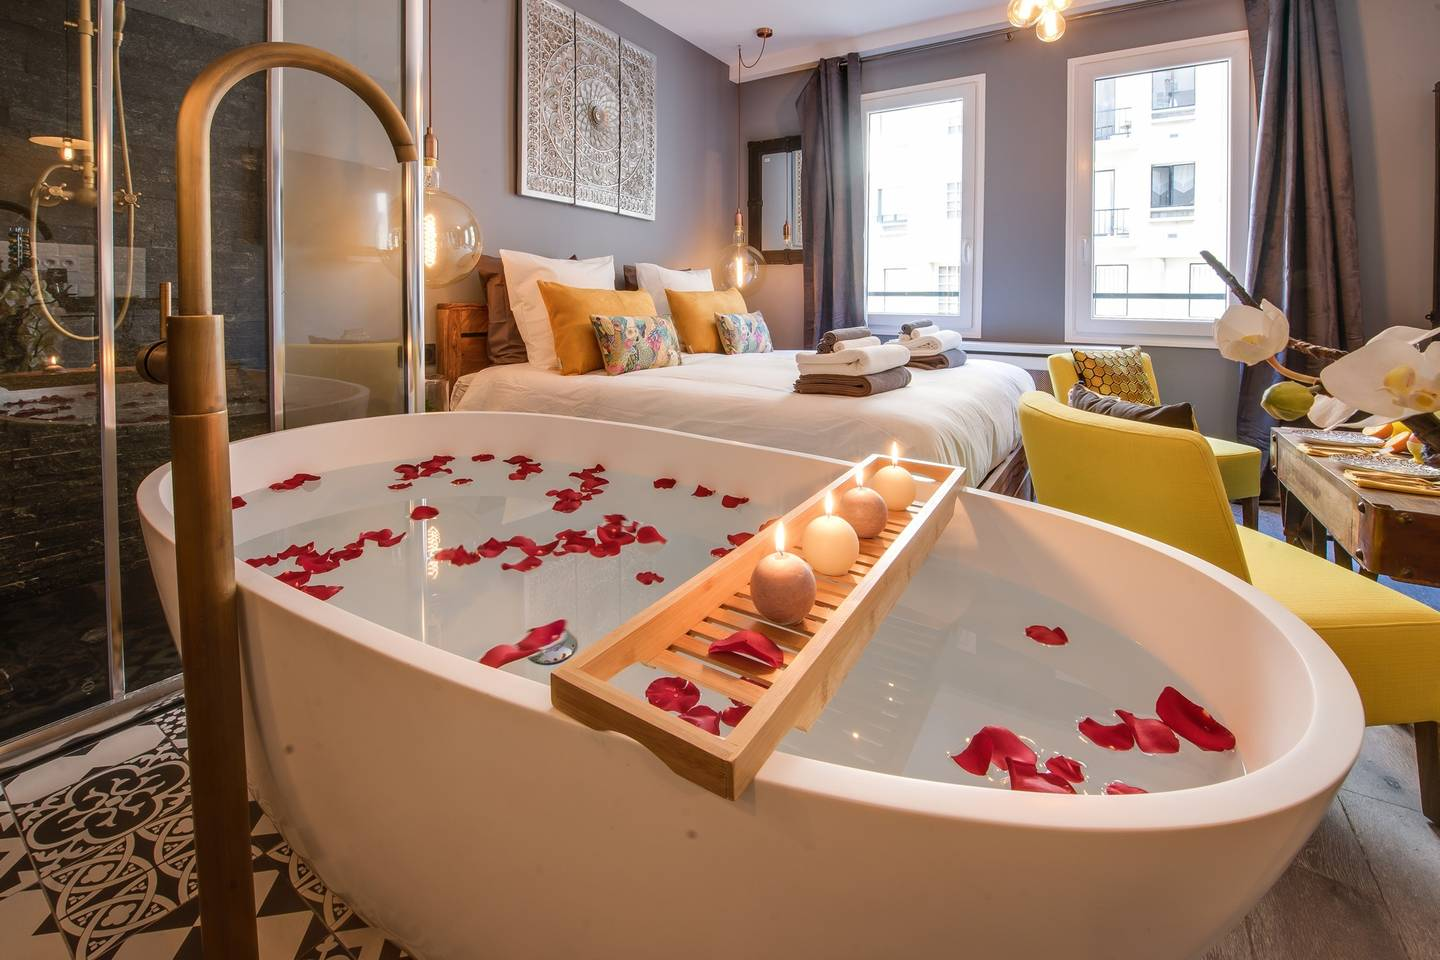 a stand alone bath tub with rose petals